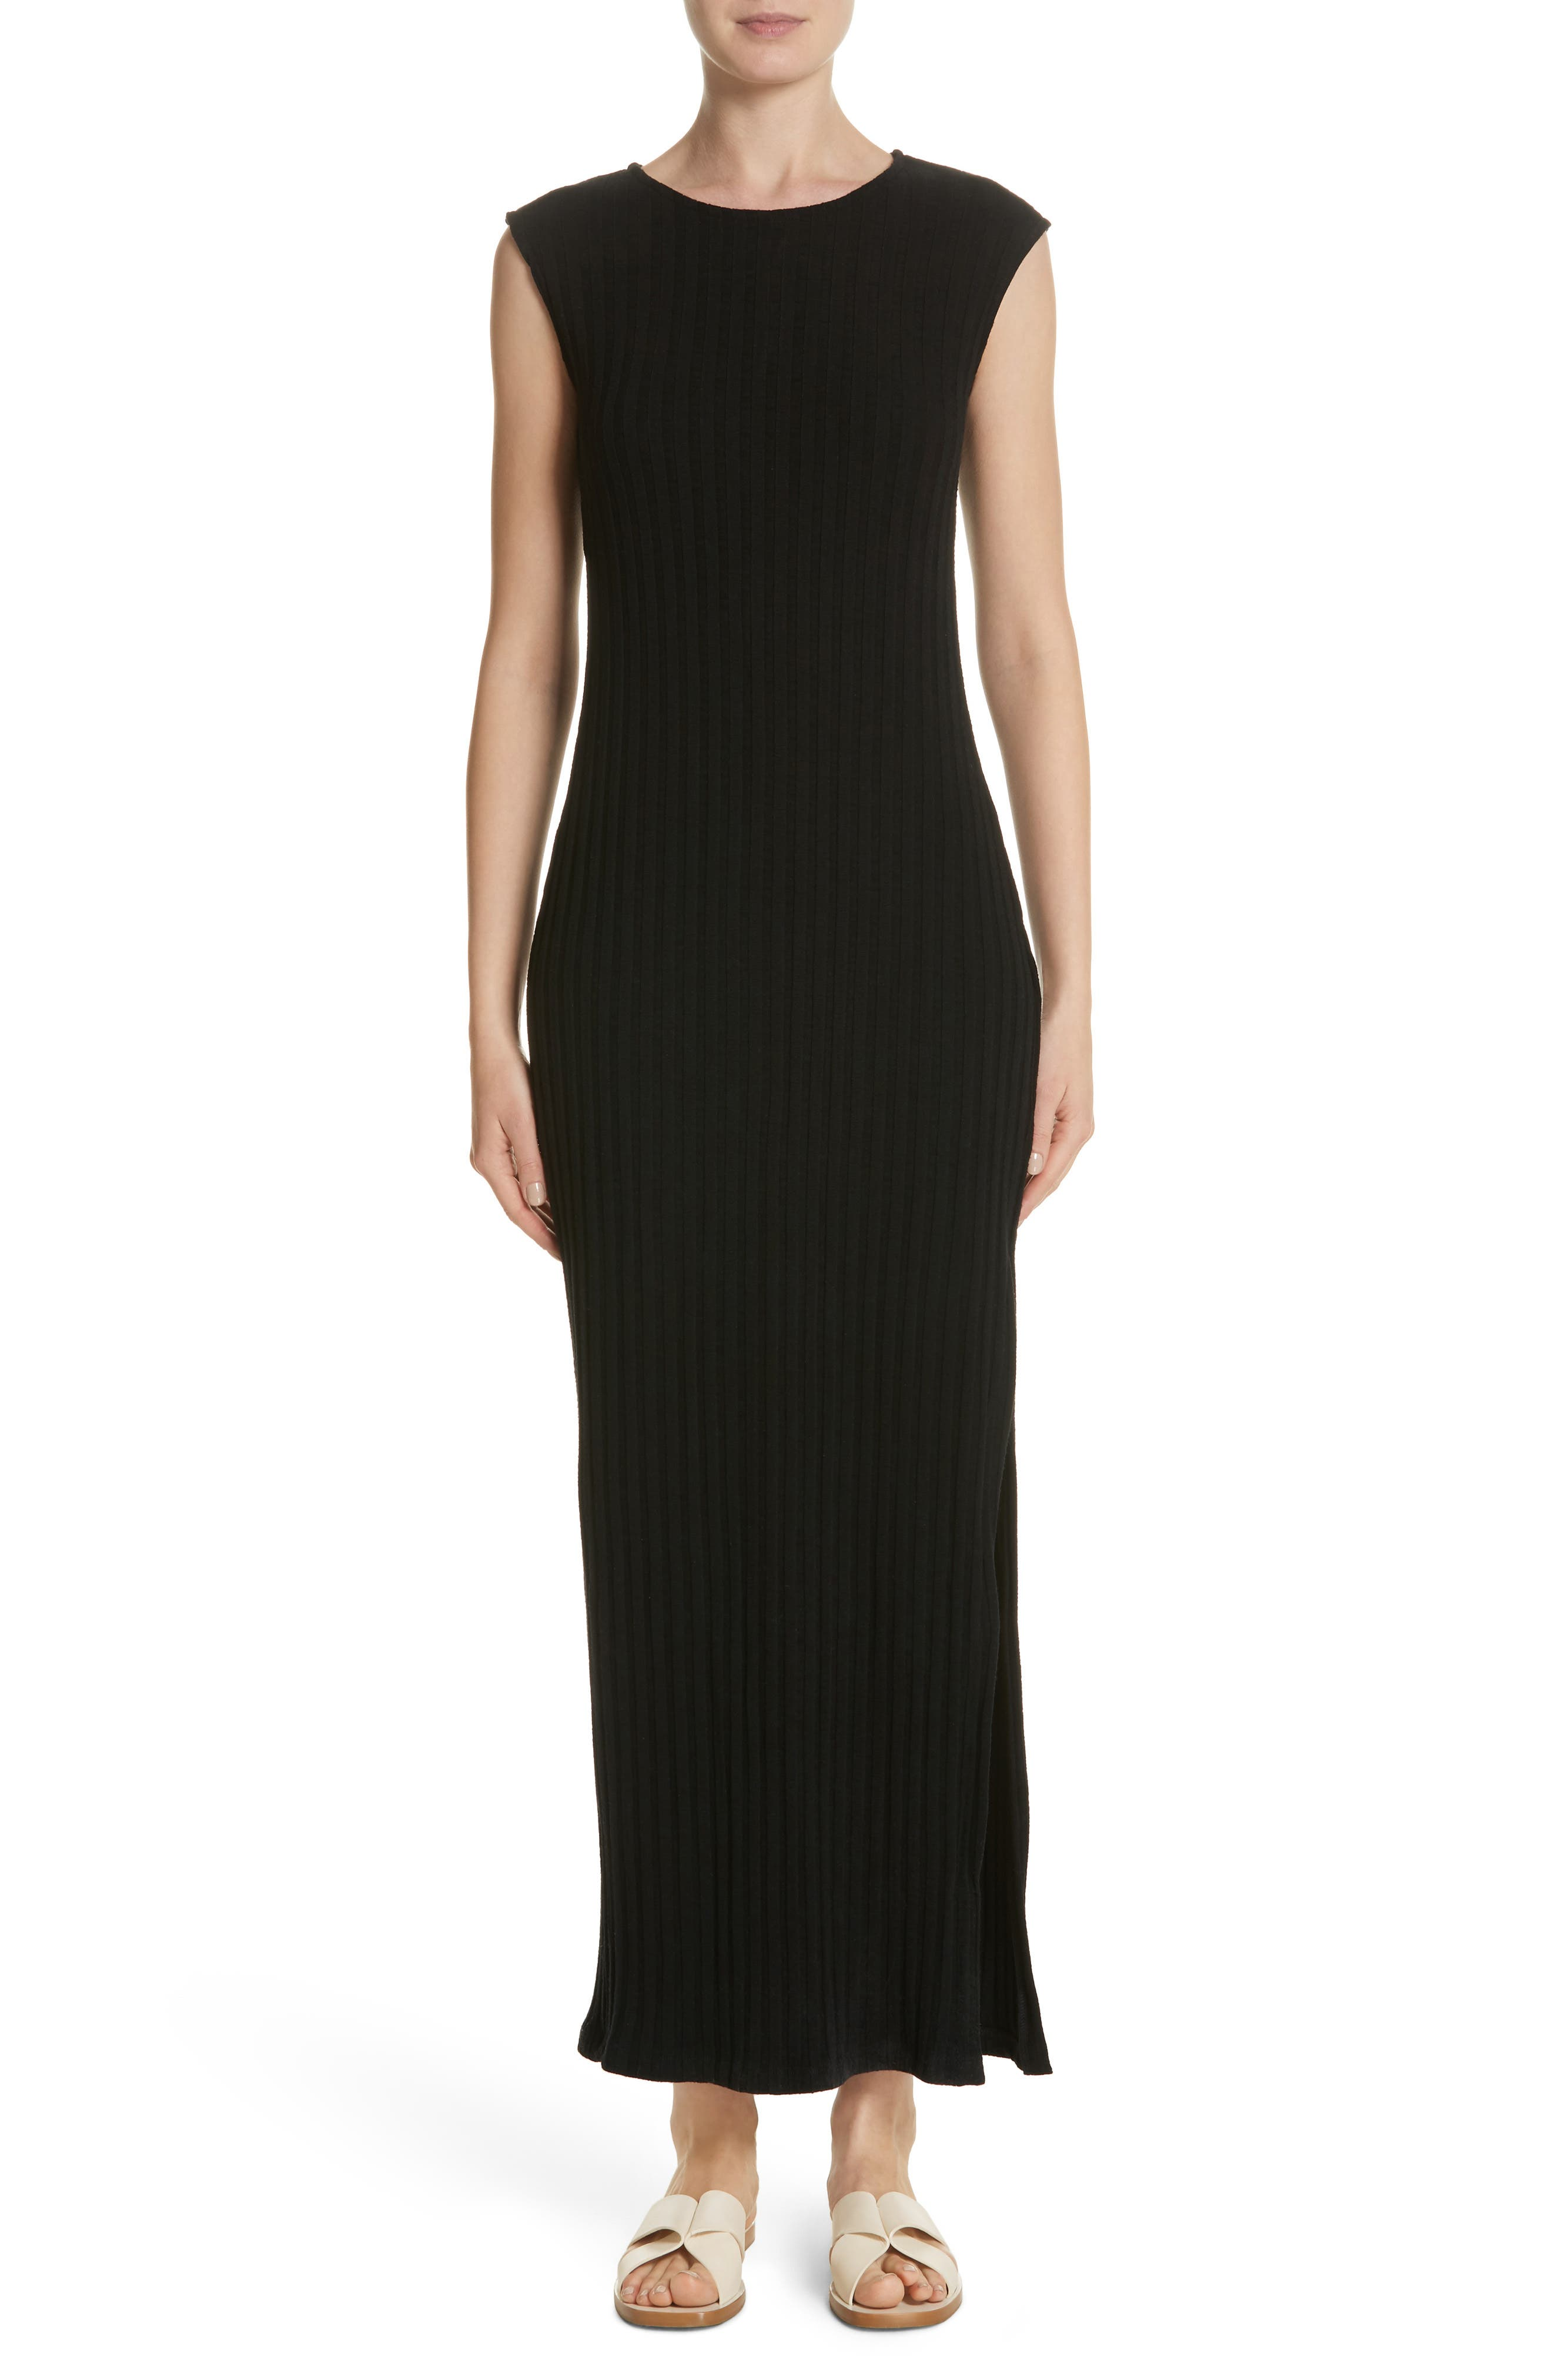 Alternate Image 1 Selected - Simon Miller Tali Stretch Ribbed Body-Con Dress